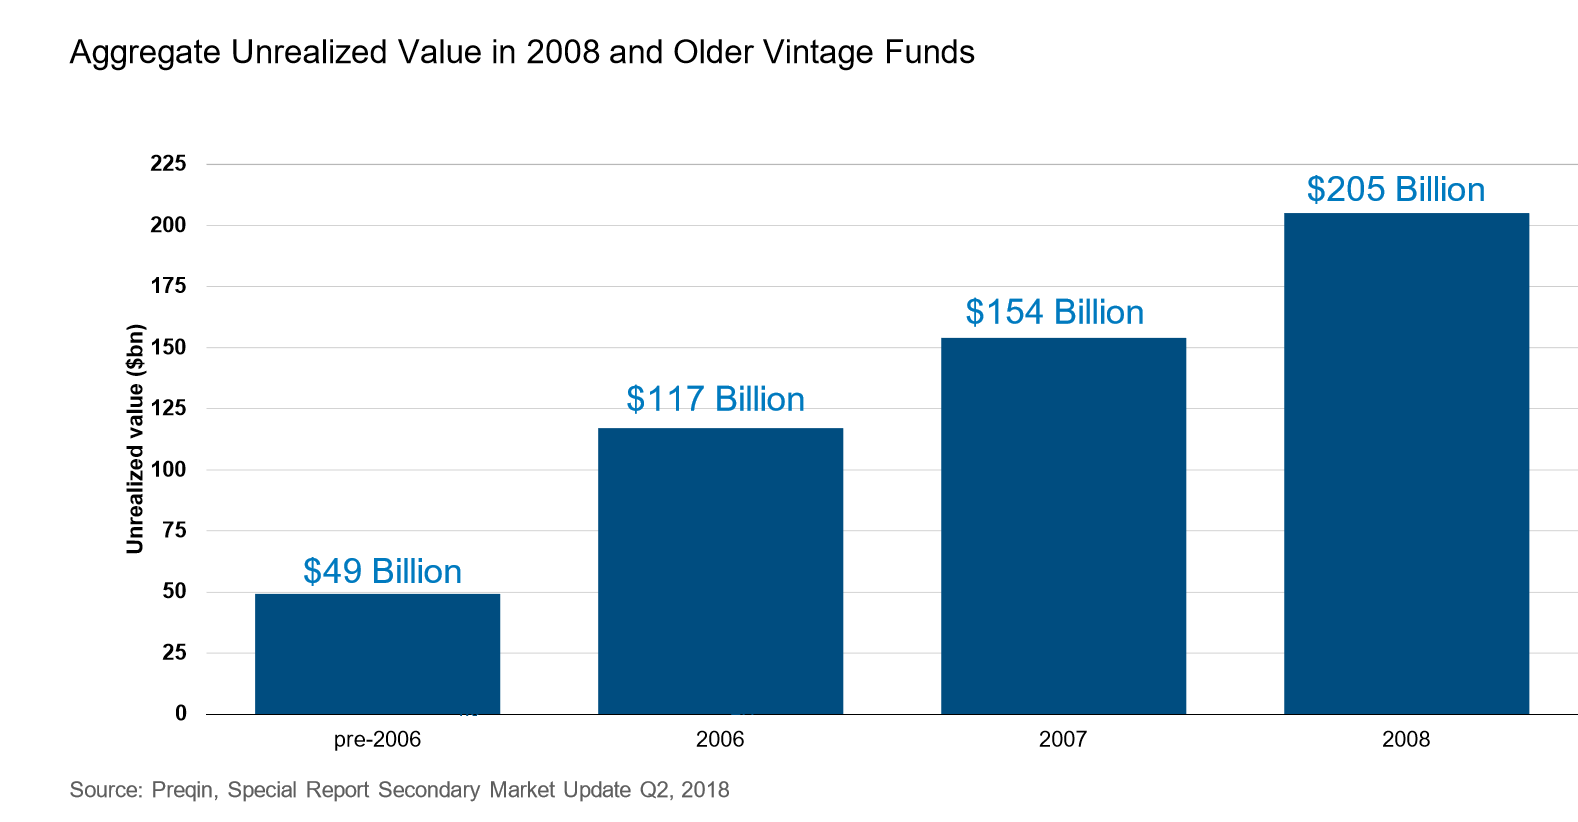 Aggregate unrealized value in 2008 and older vintage funds